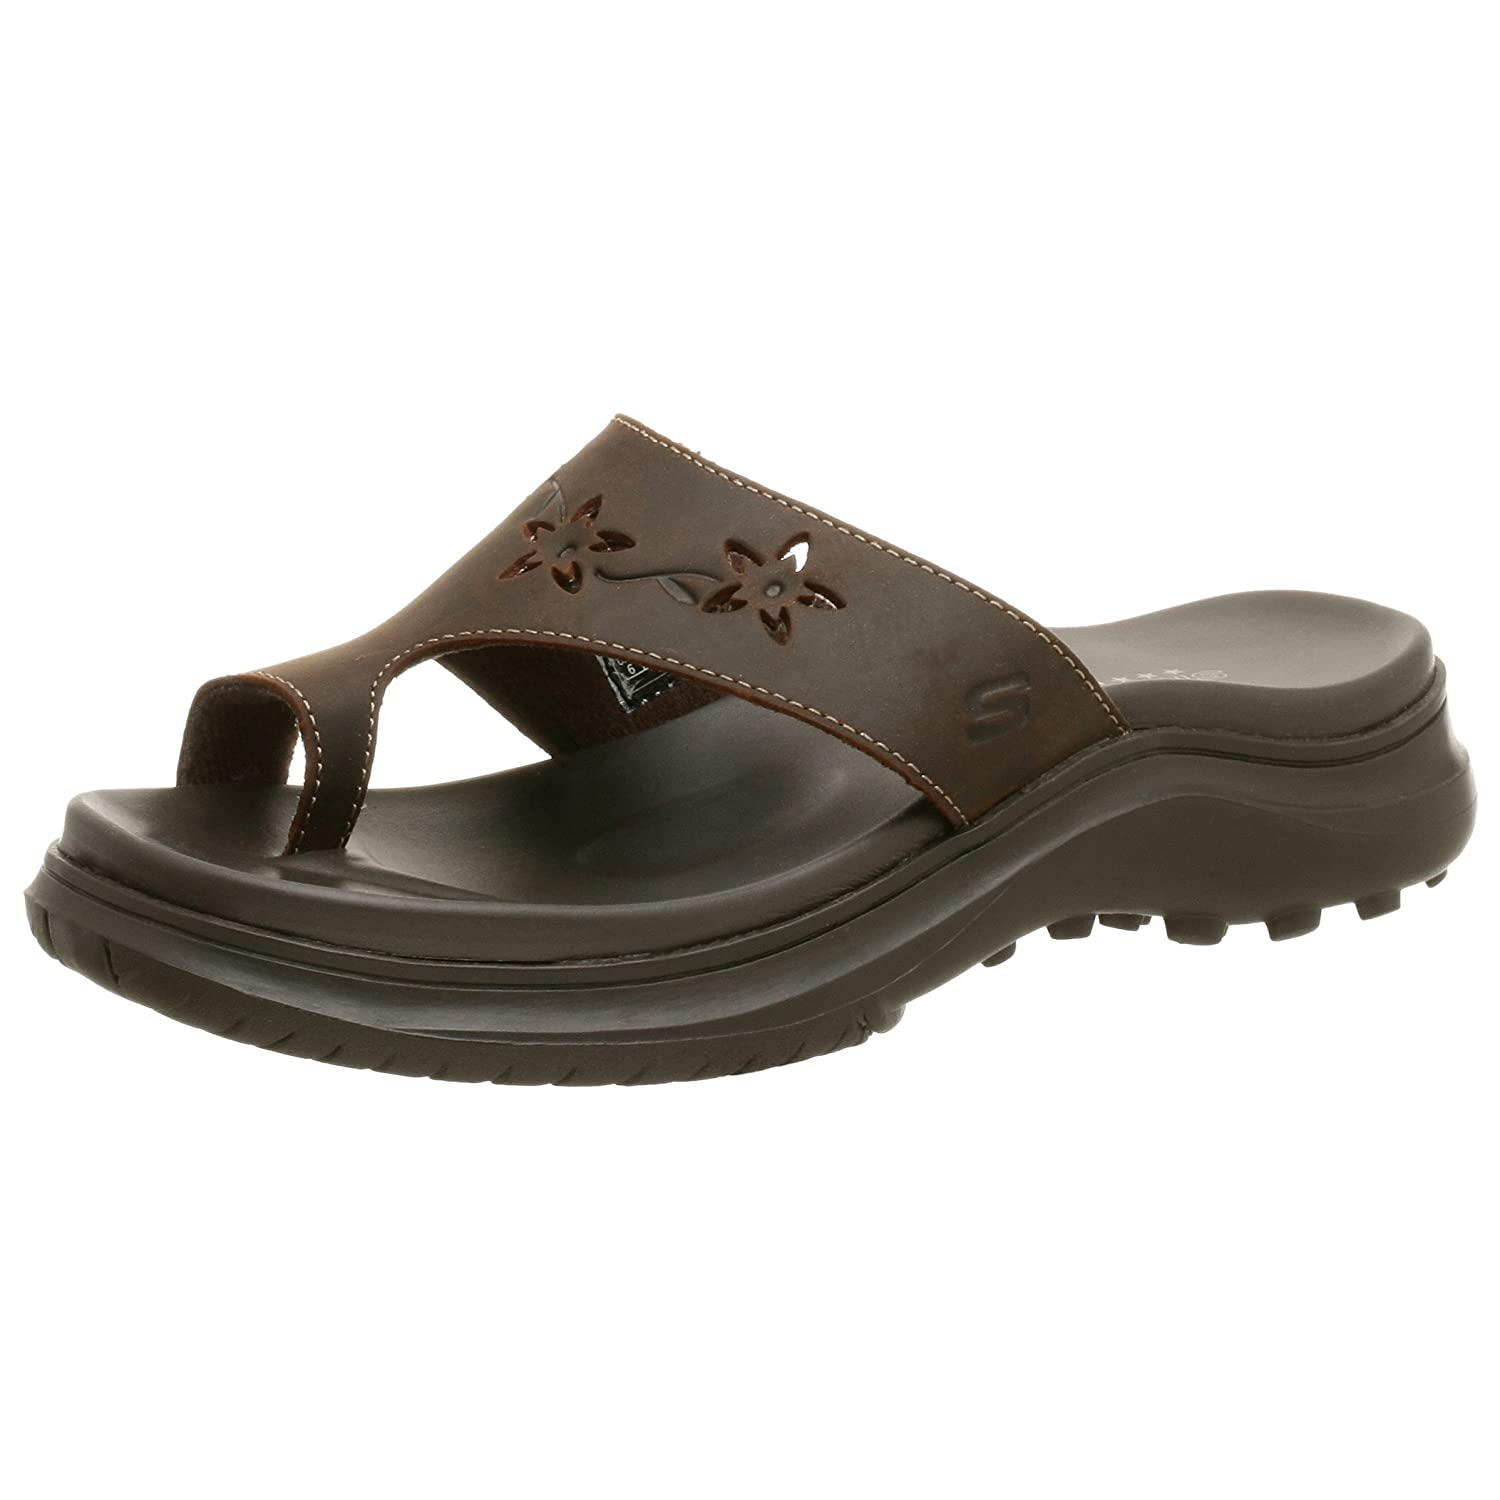 Endless.com: Skechers USA Women's Parterre Thong: Women's Shoes :  skechers sandals